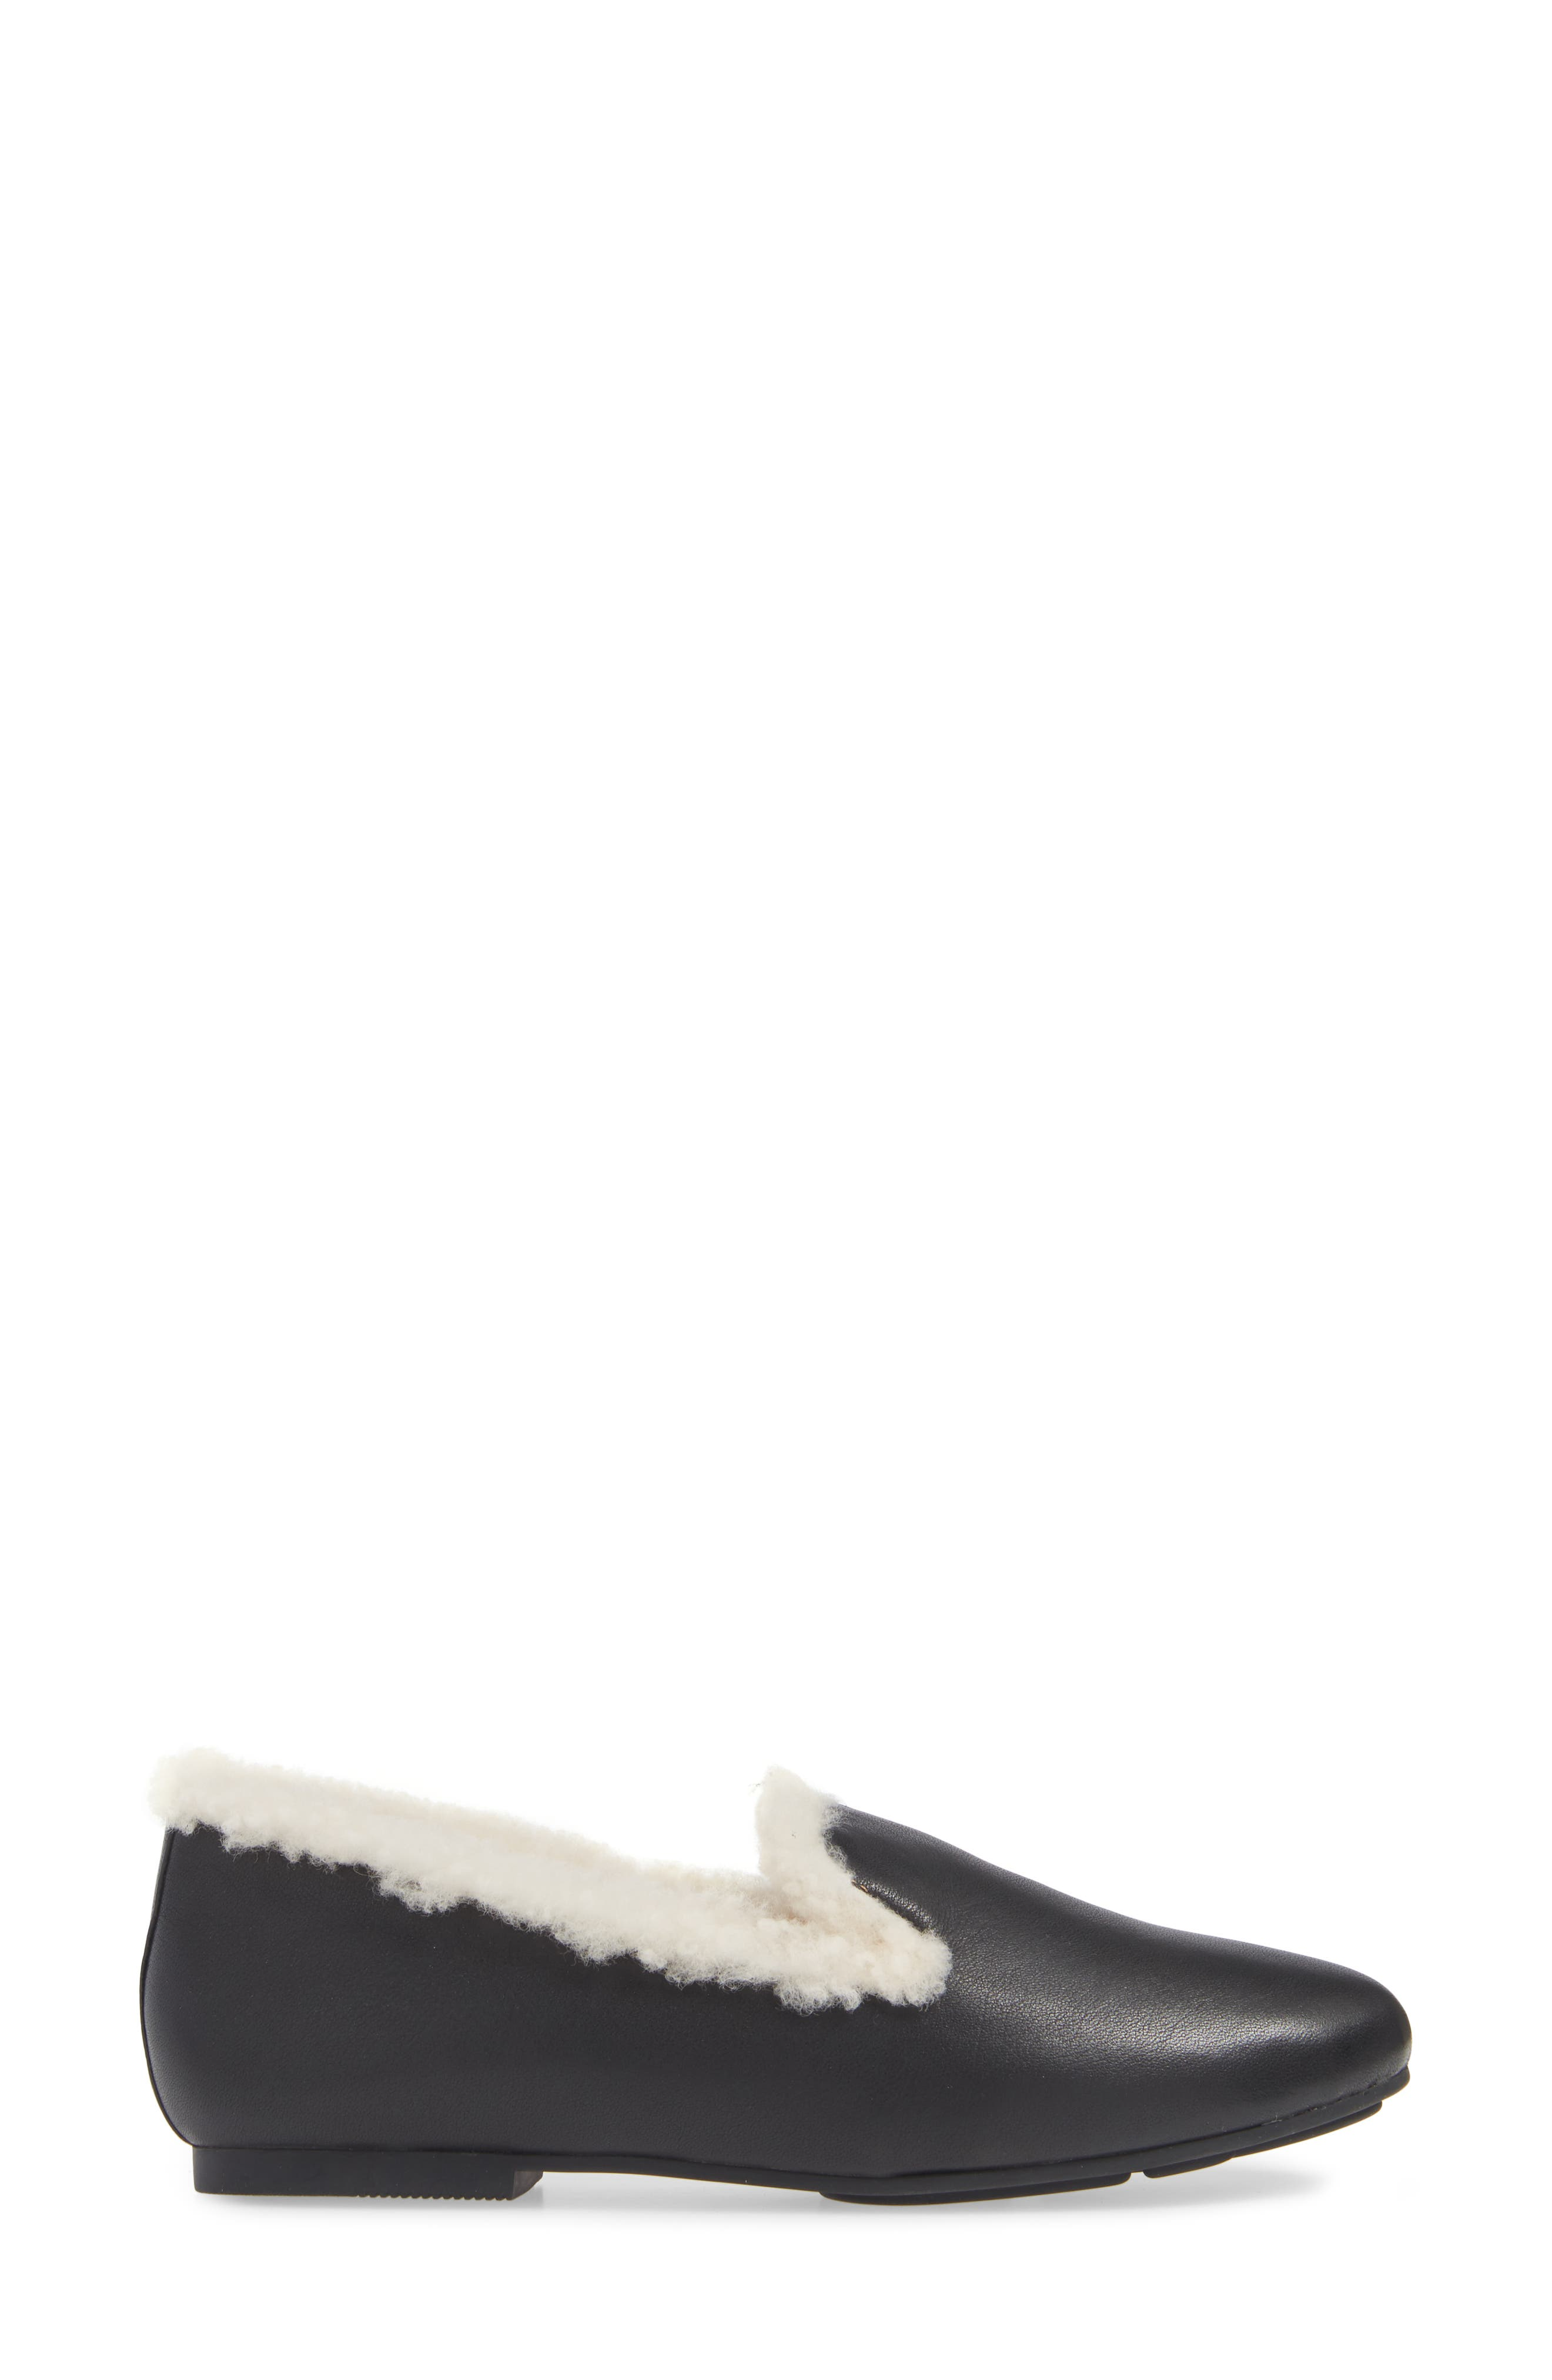 GENTLE SOULS BY KENNETH COLE, Eugene Genuine Shearling Lined Loafer, Alternate thumbnail 3, color, 011